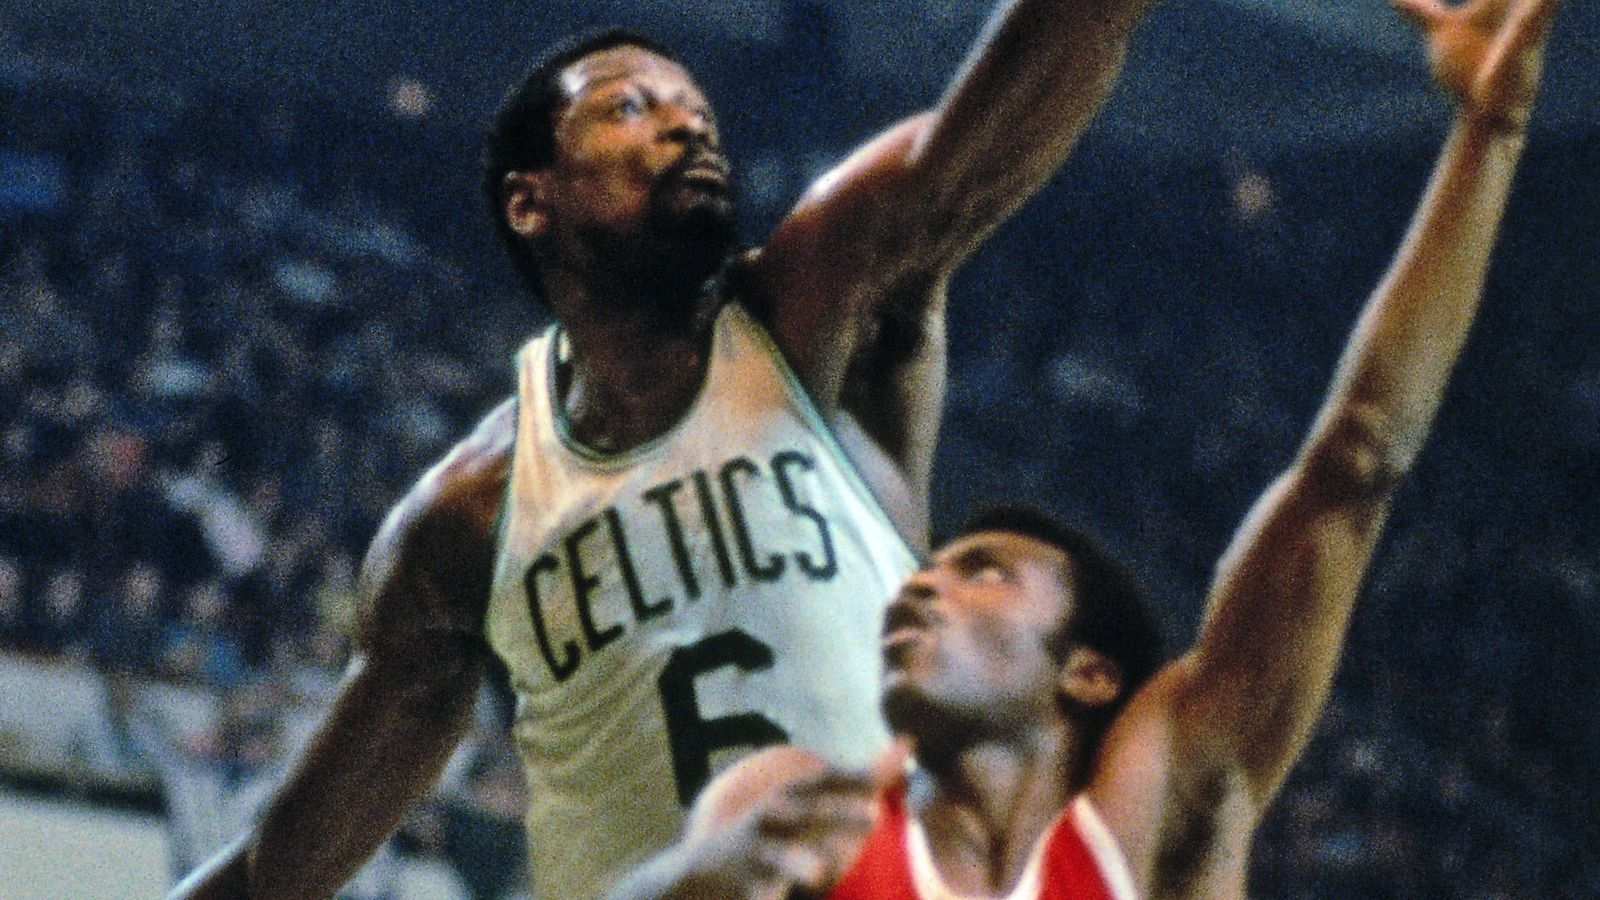 Most iconic NBA numbers: #34 – Bill Russell and Julius Erving